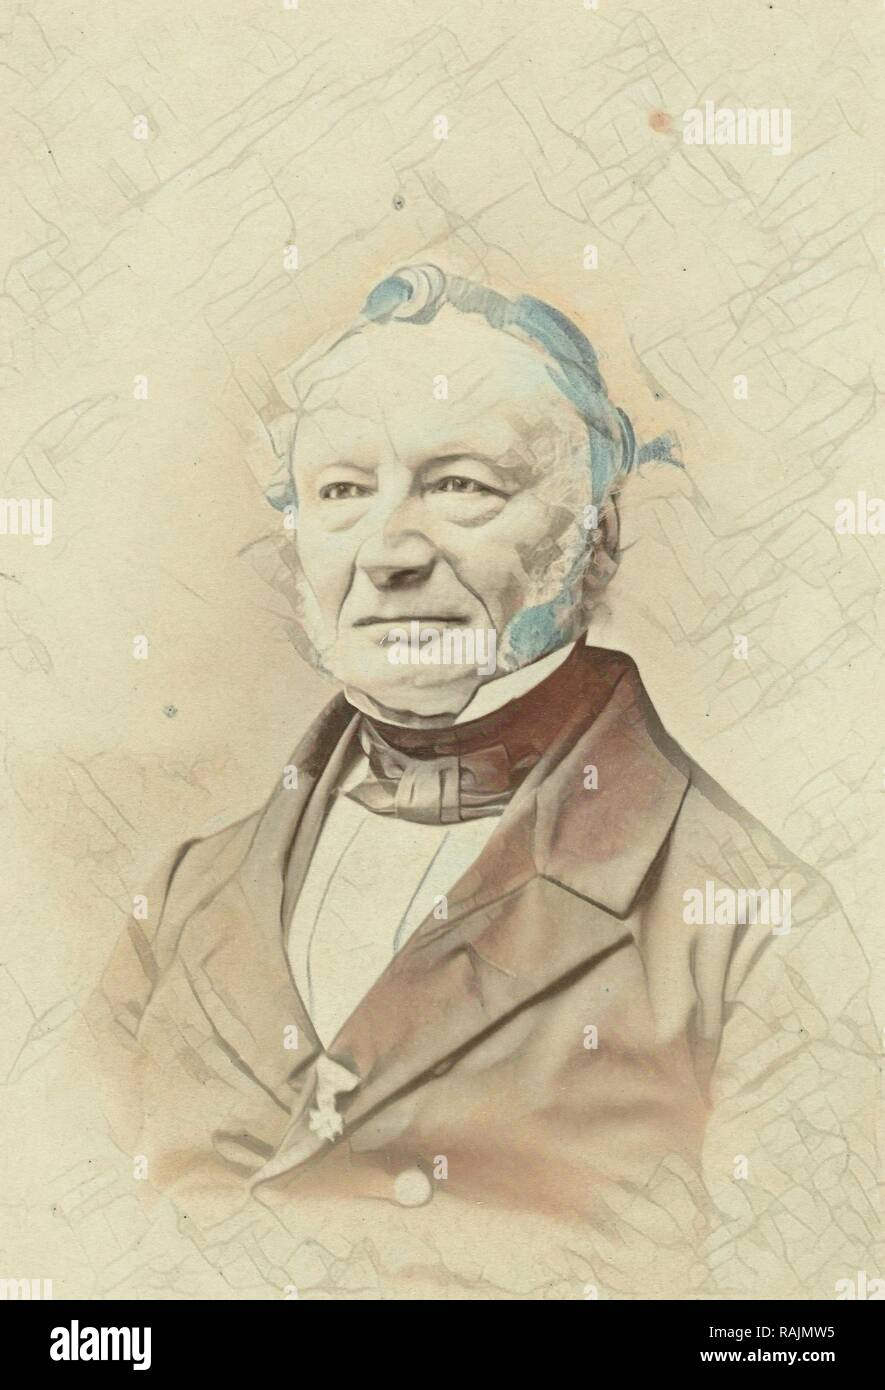 Portrait of L. G. Pareau, professor in the Faculty of Theology at the University of Groningen, The Netherlands reimagined - Stock Image